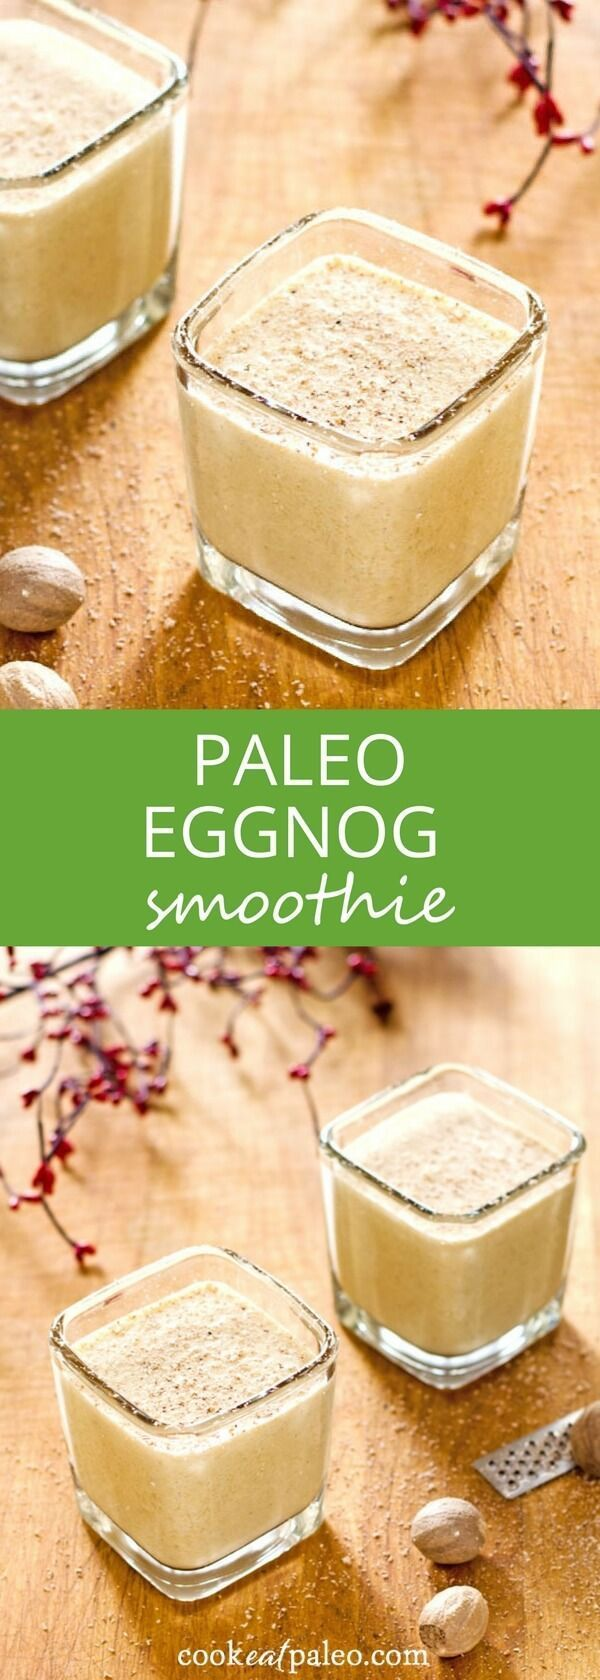 Eggnog protein shake - an easy paleo eggnog smoothie perfect for breakfast or a quick snack. Gluten-free, dairy-free, and refined sugar-free. via /cookeatpaleo/